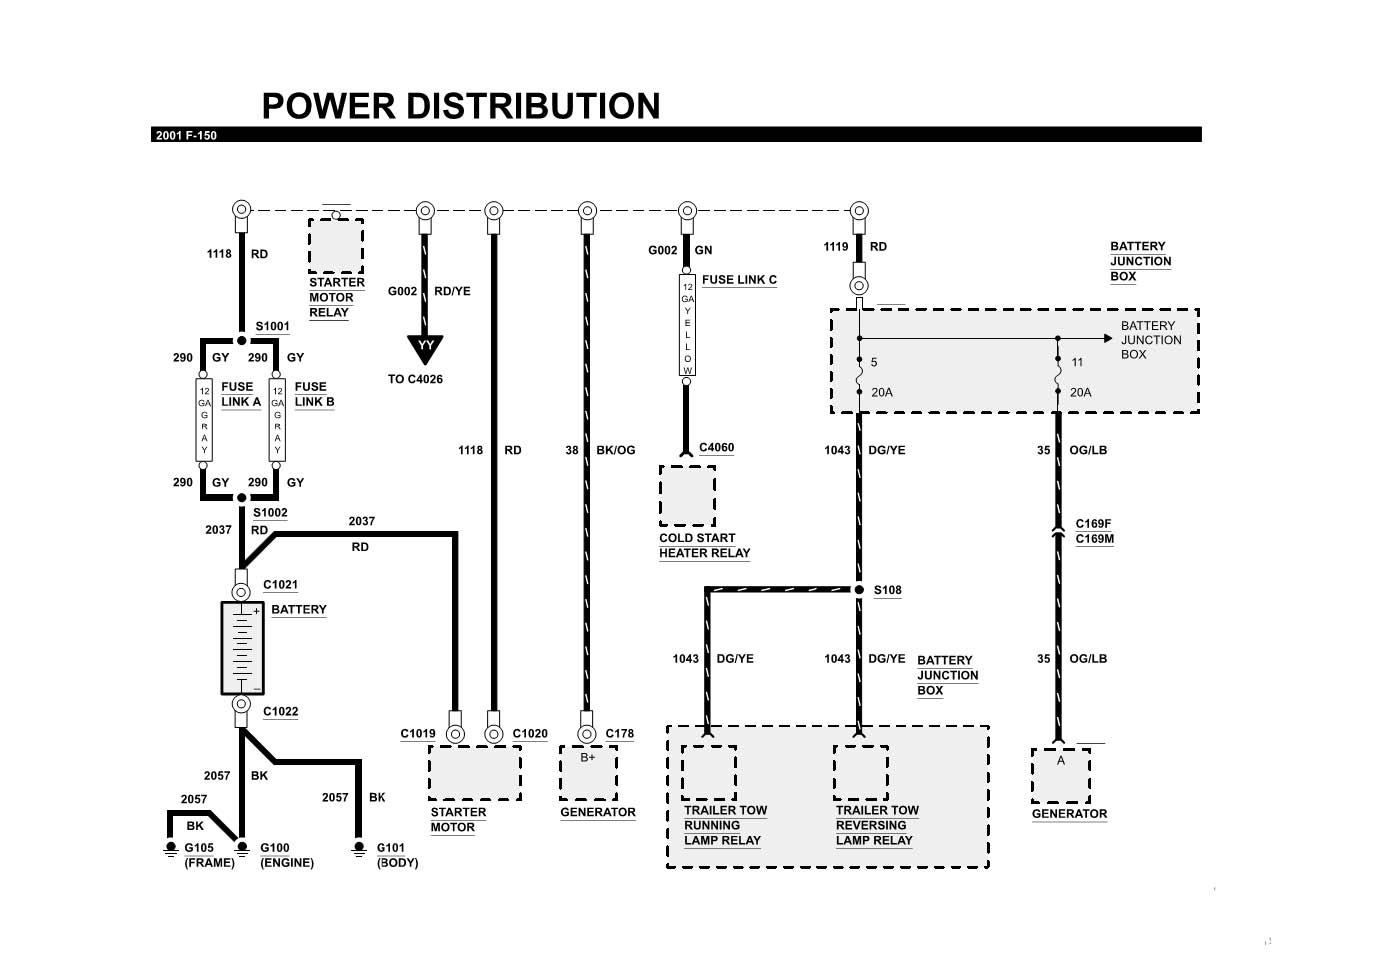 1995 Ford Ranger Fuel Pump Wiring Diagram Simple Guide About 99 Fuse Box 04 Mustang Pats 33 95